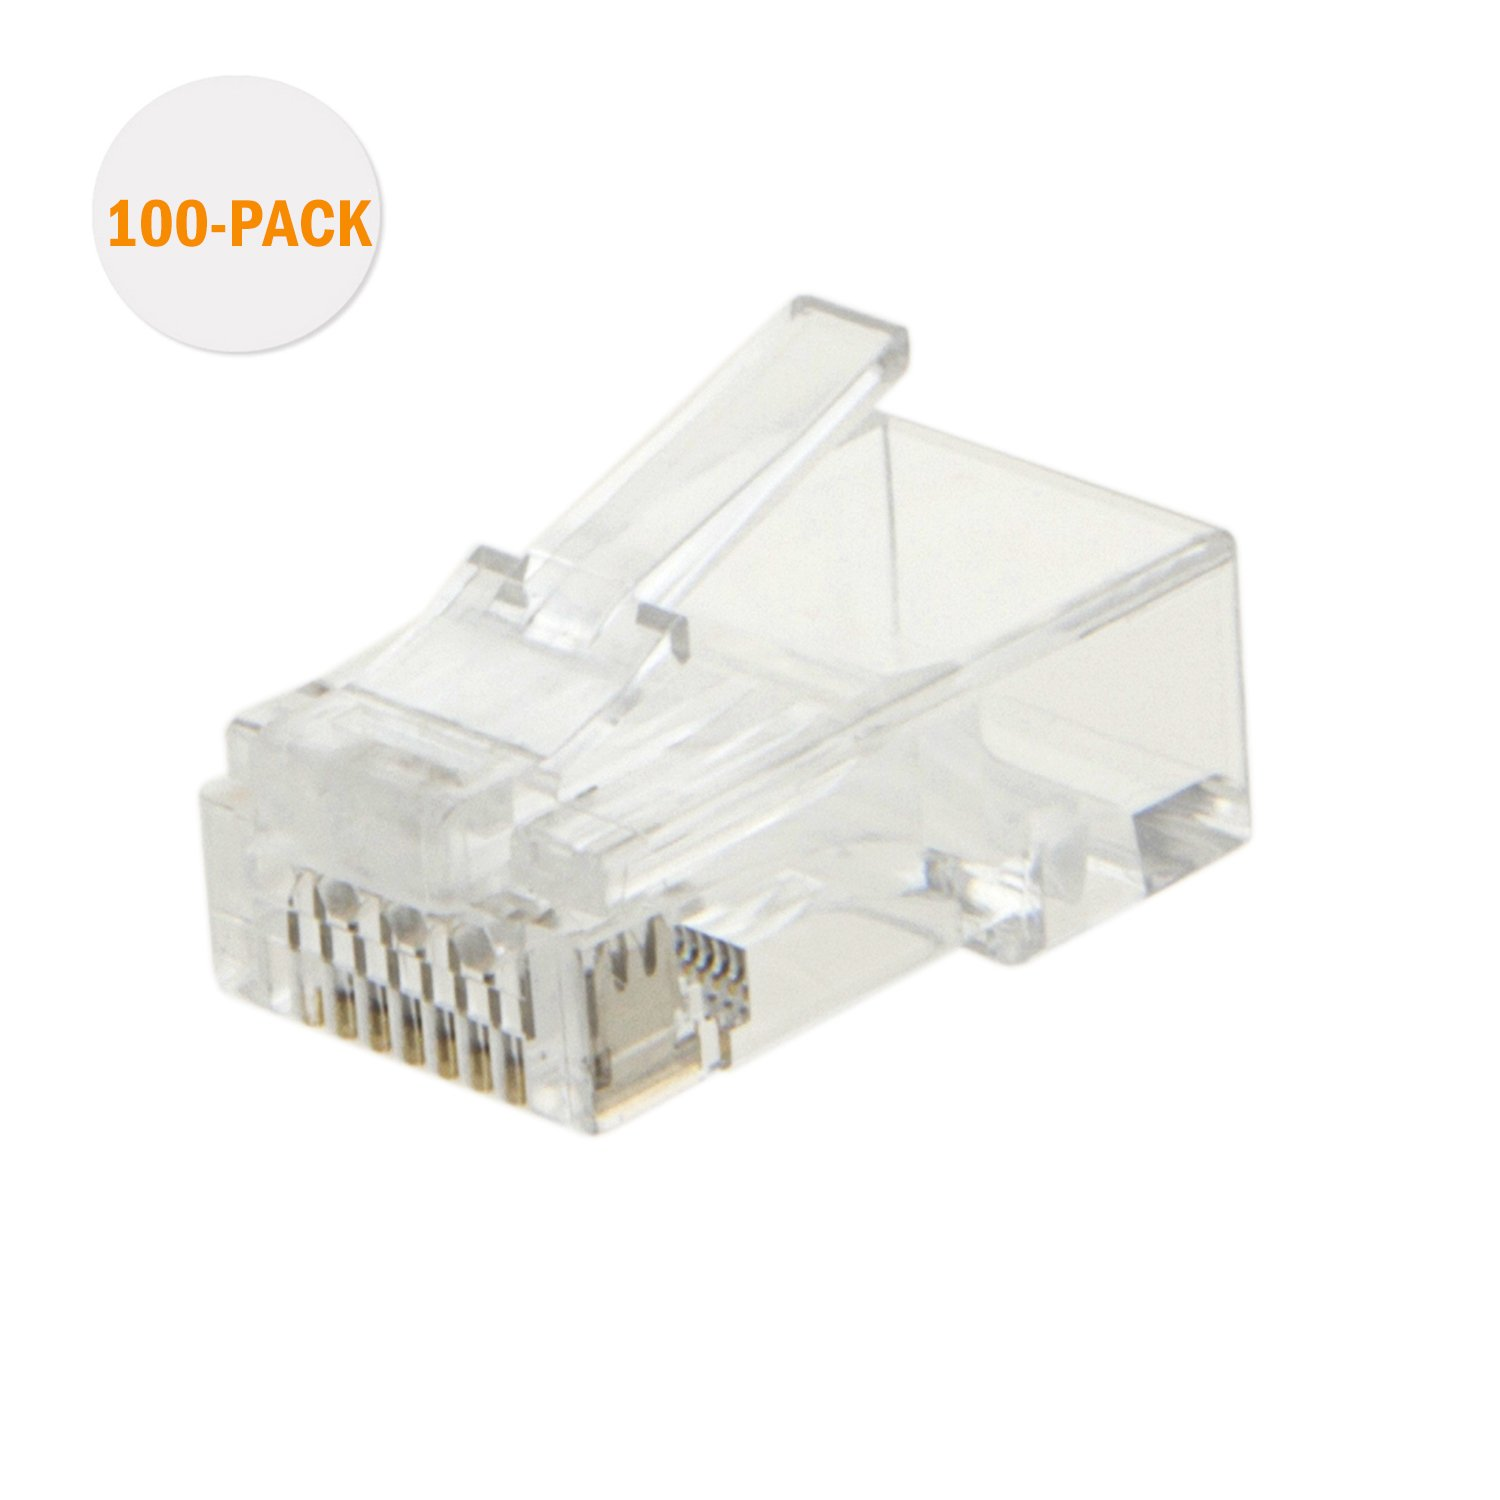 Cat6 Rj45 Ends Cablecreation 100 Pack Connector Cat6a Cat5e Wiring Plug Ethernet Cable Crimp Connectors Utp Network For Solid Wire And